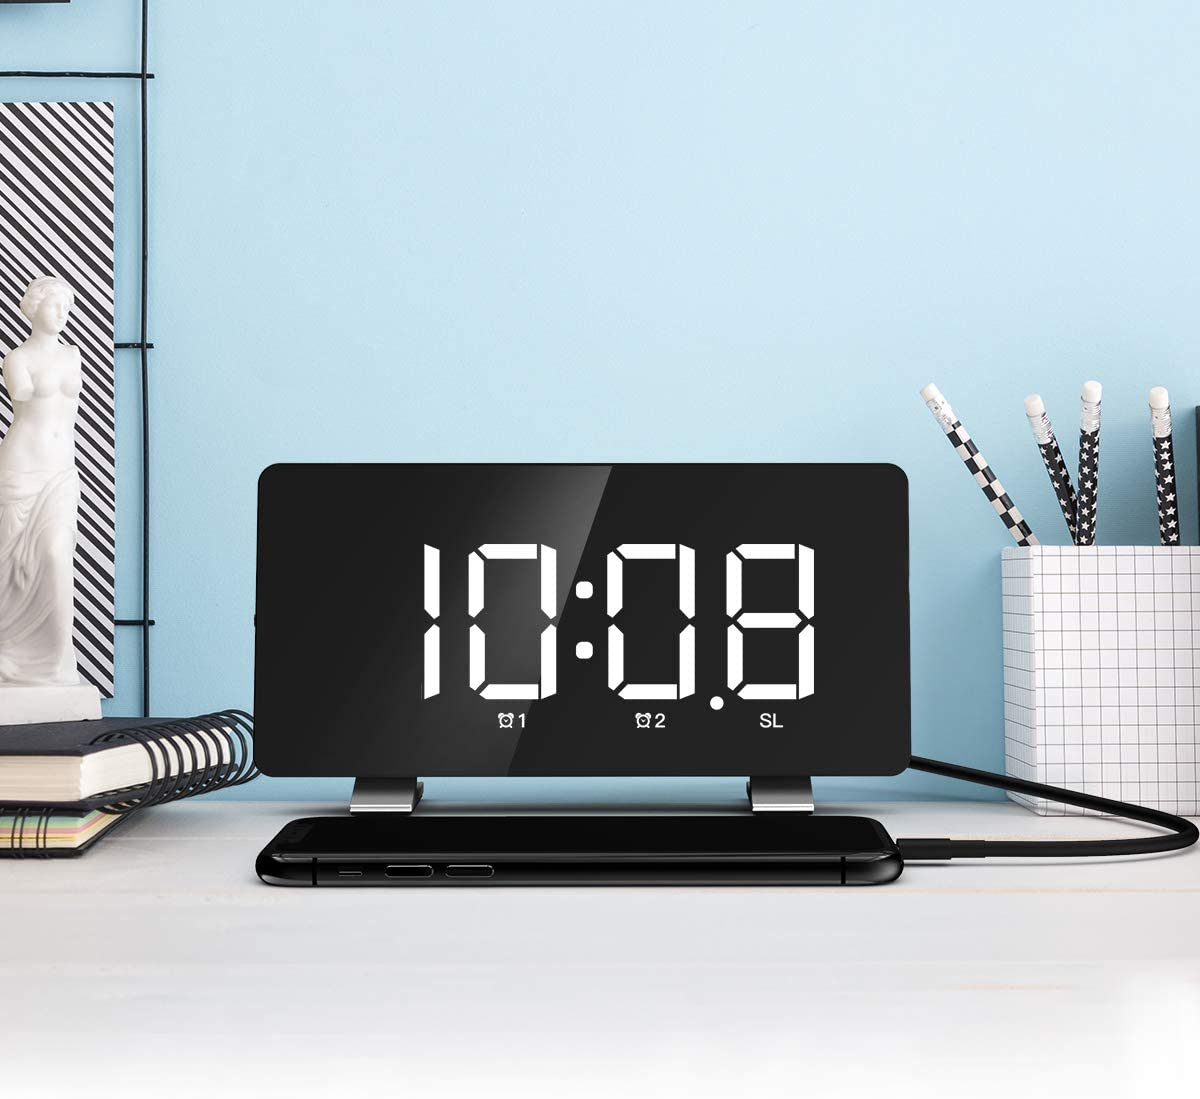 Nicewell Digital Alarm Clock 7.3 LED Screen with Snooze Adjustable 0-100 Brightness Volume Dimmable Easy for Kid Senior Bedside Alarm Clock for Bedroom Home Office 12 24H